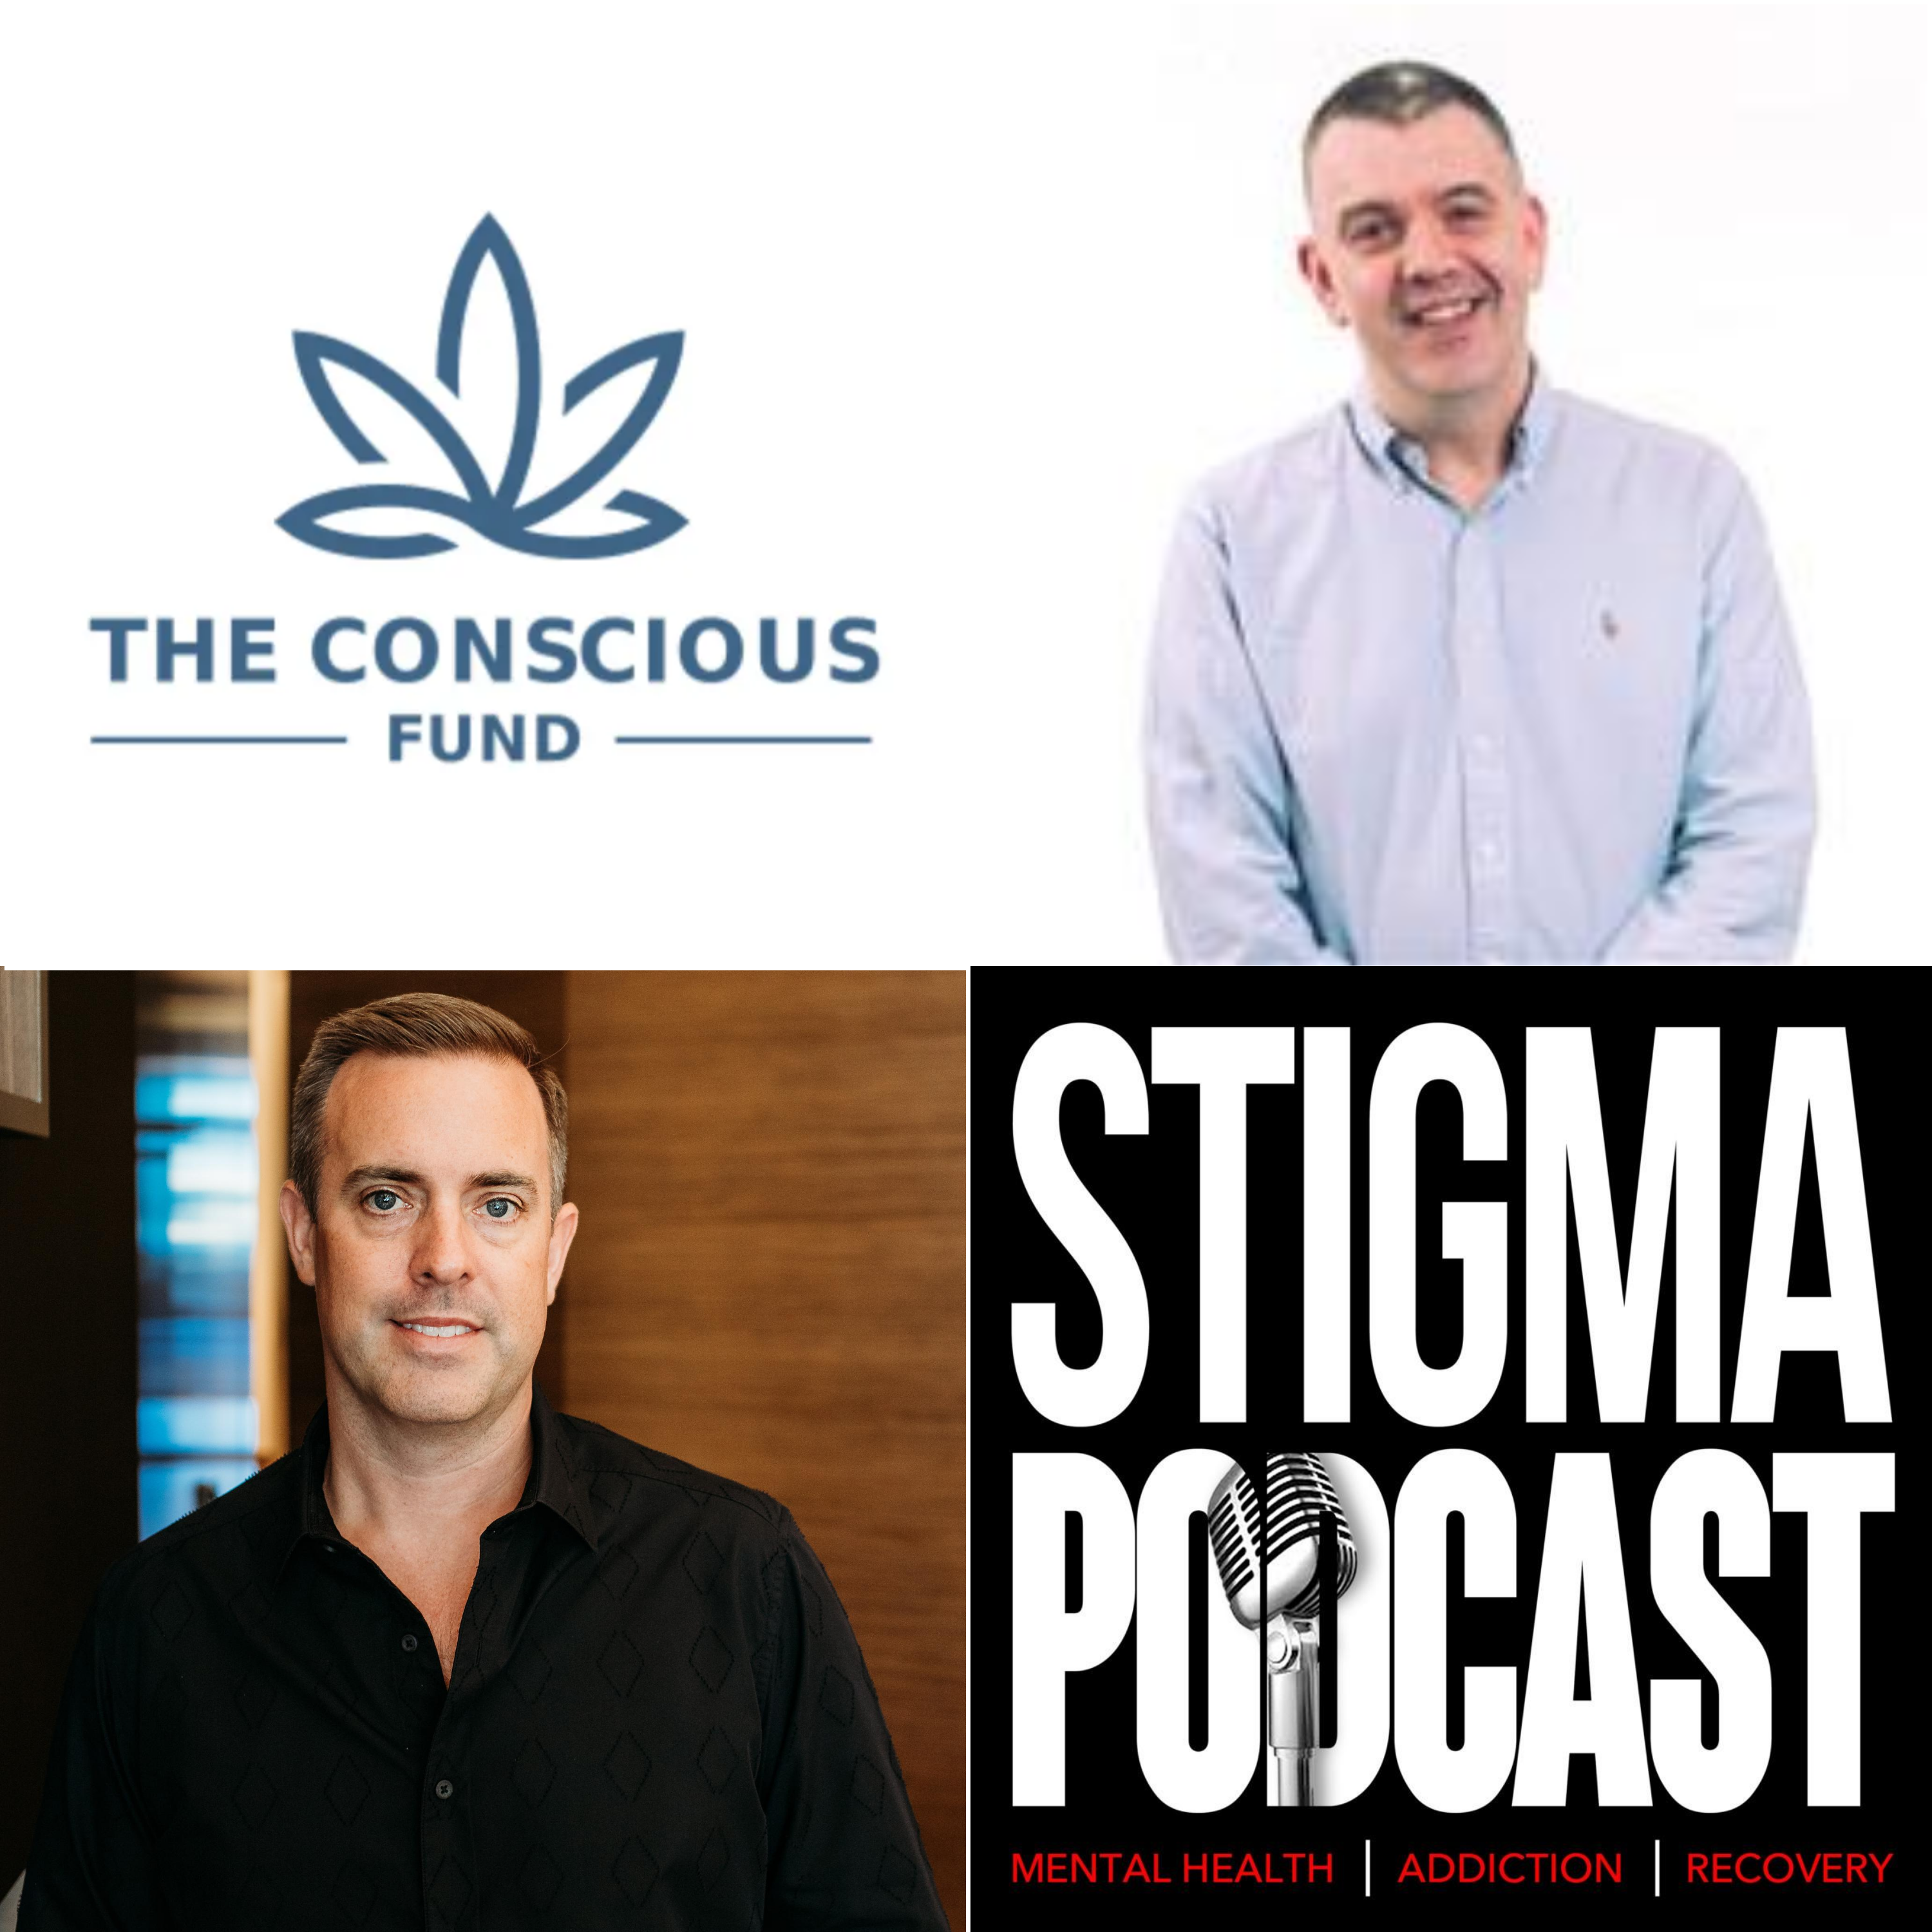 Stigma Podcast - Mental Health - #63 - Psychedelic Focused VC: The Conscious Fund with Richard Skaife